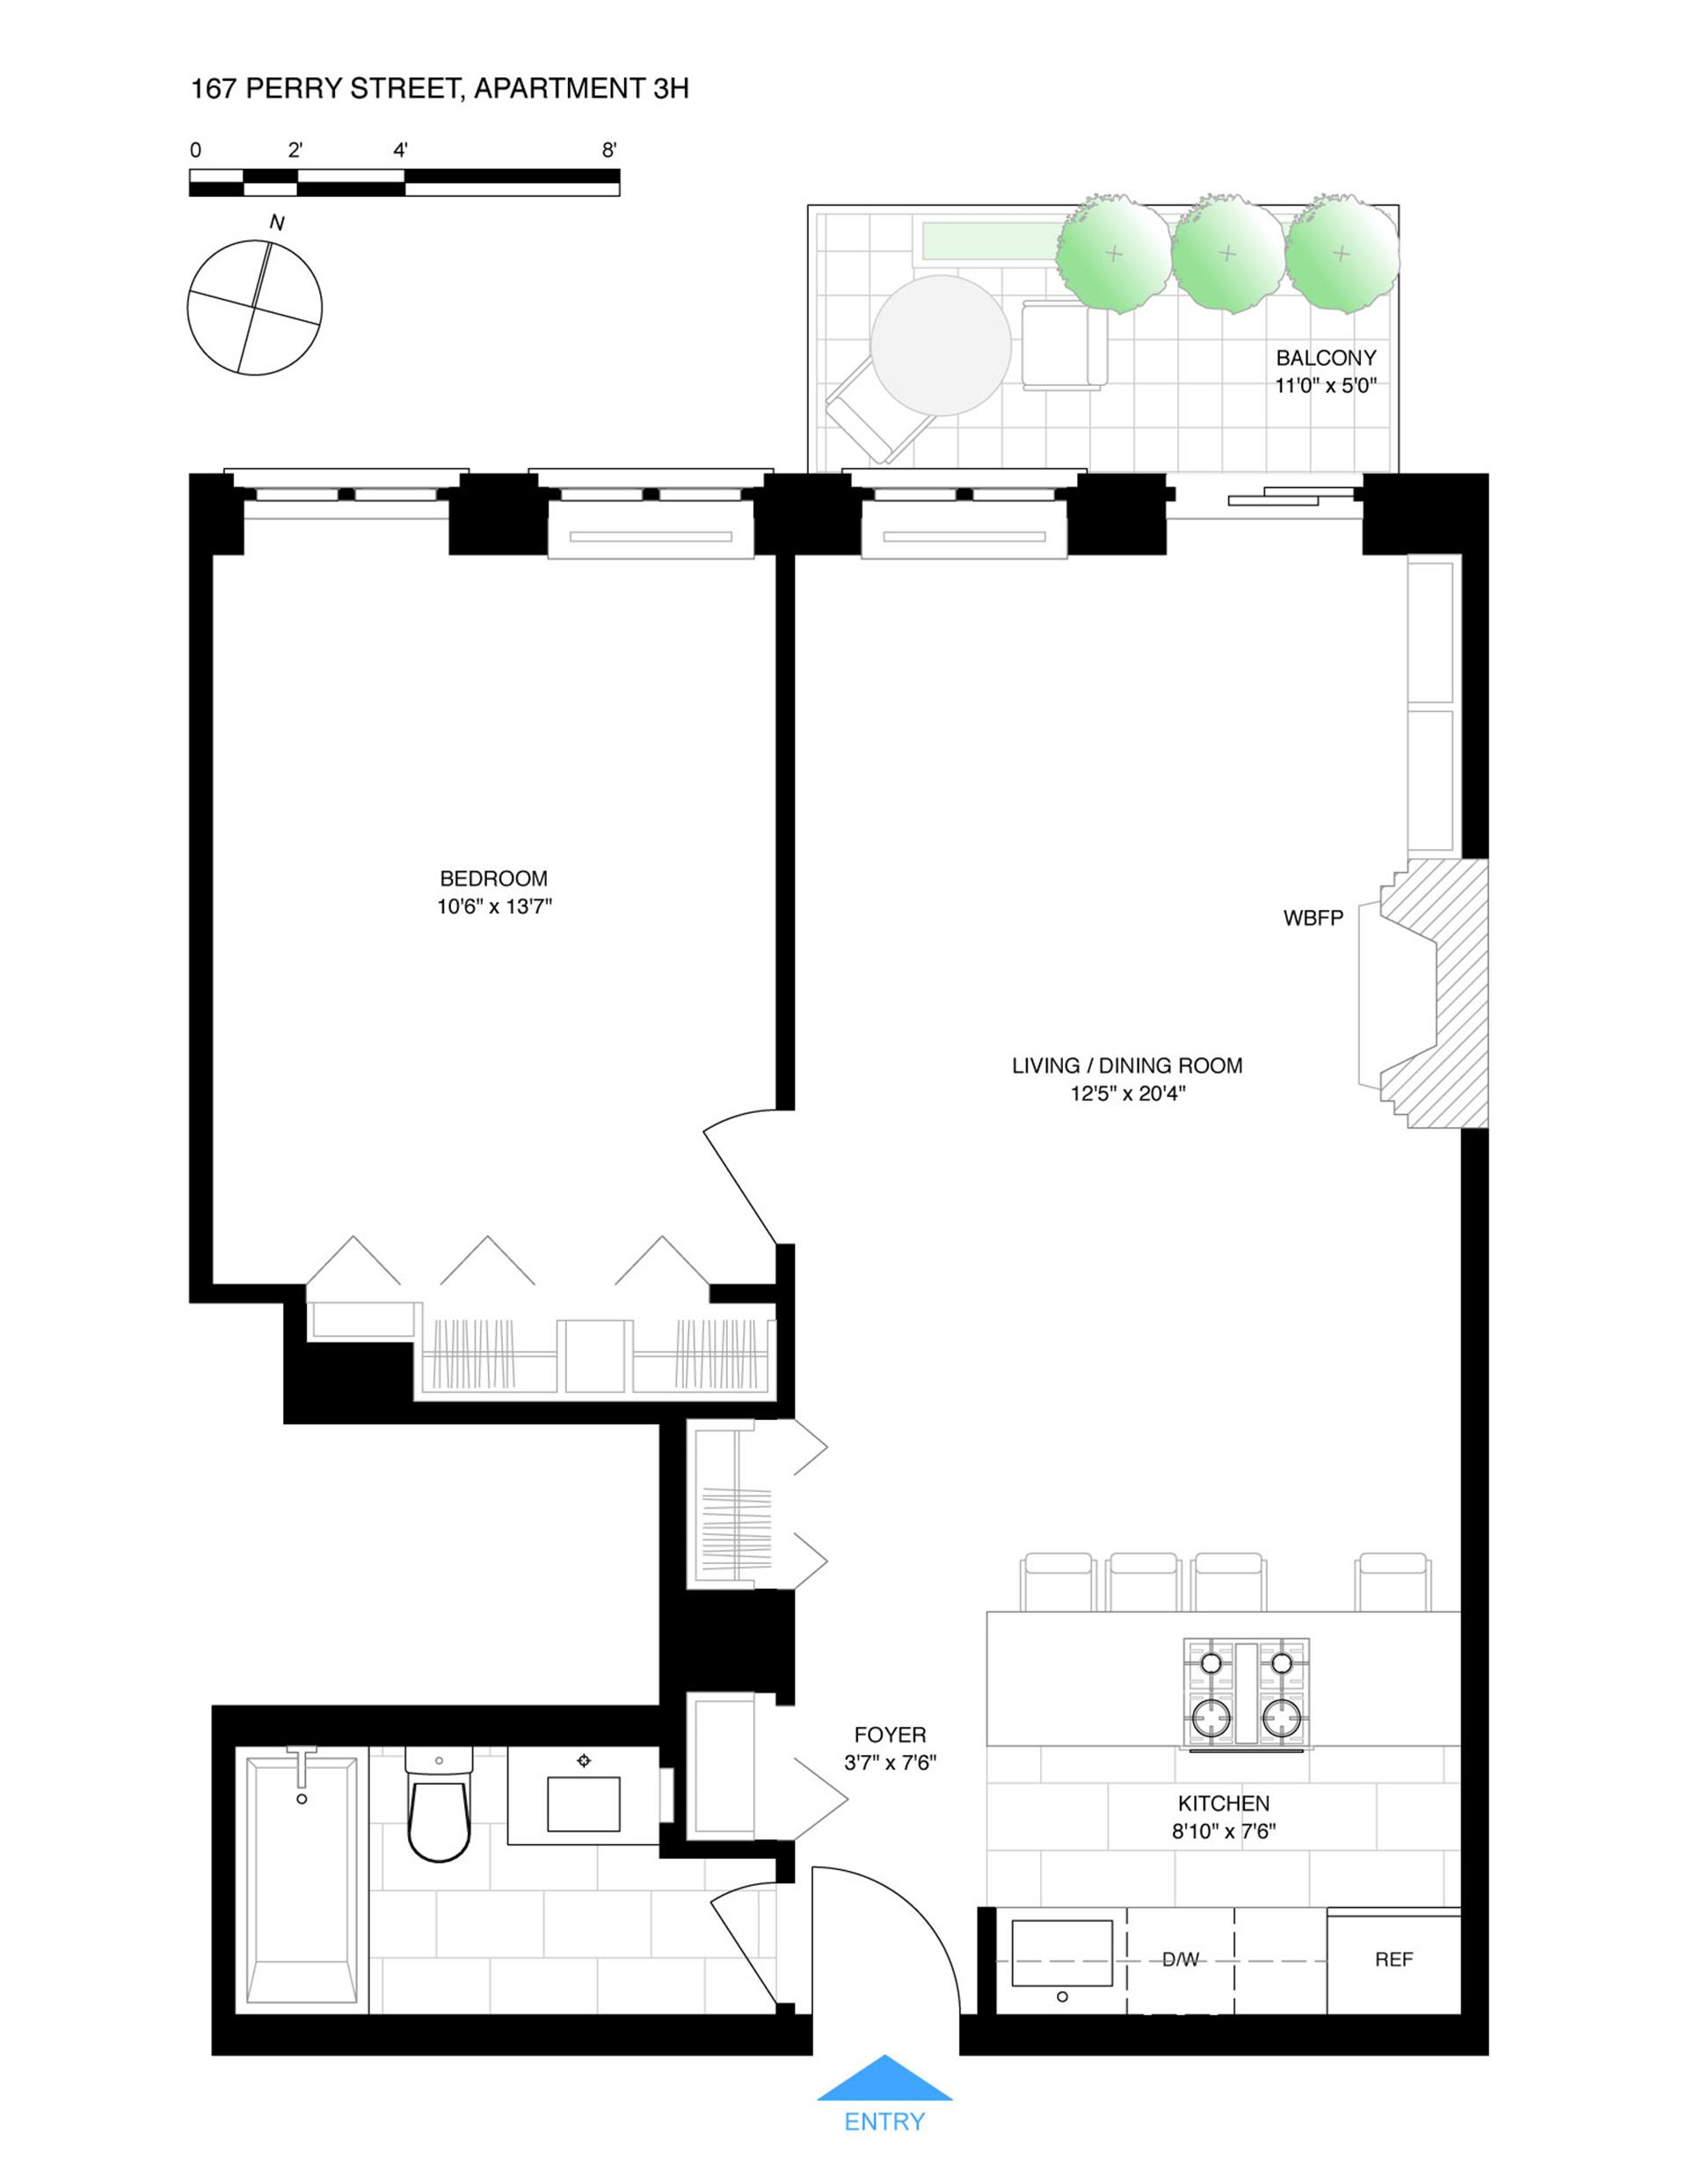 Floor plan of Perry + West, 167 Perry St, 3H - West Village - Meatpacking District, New York